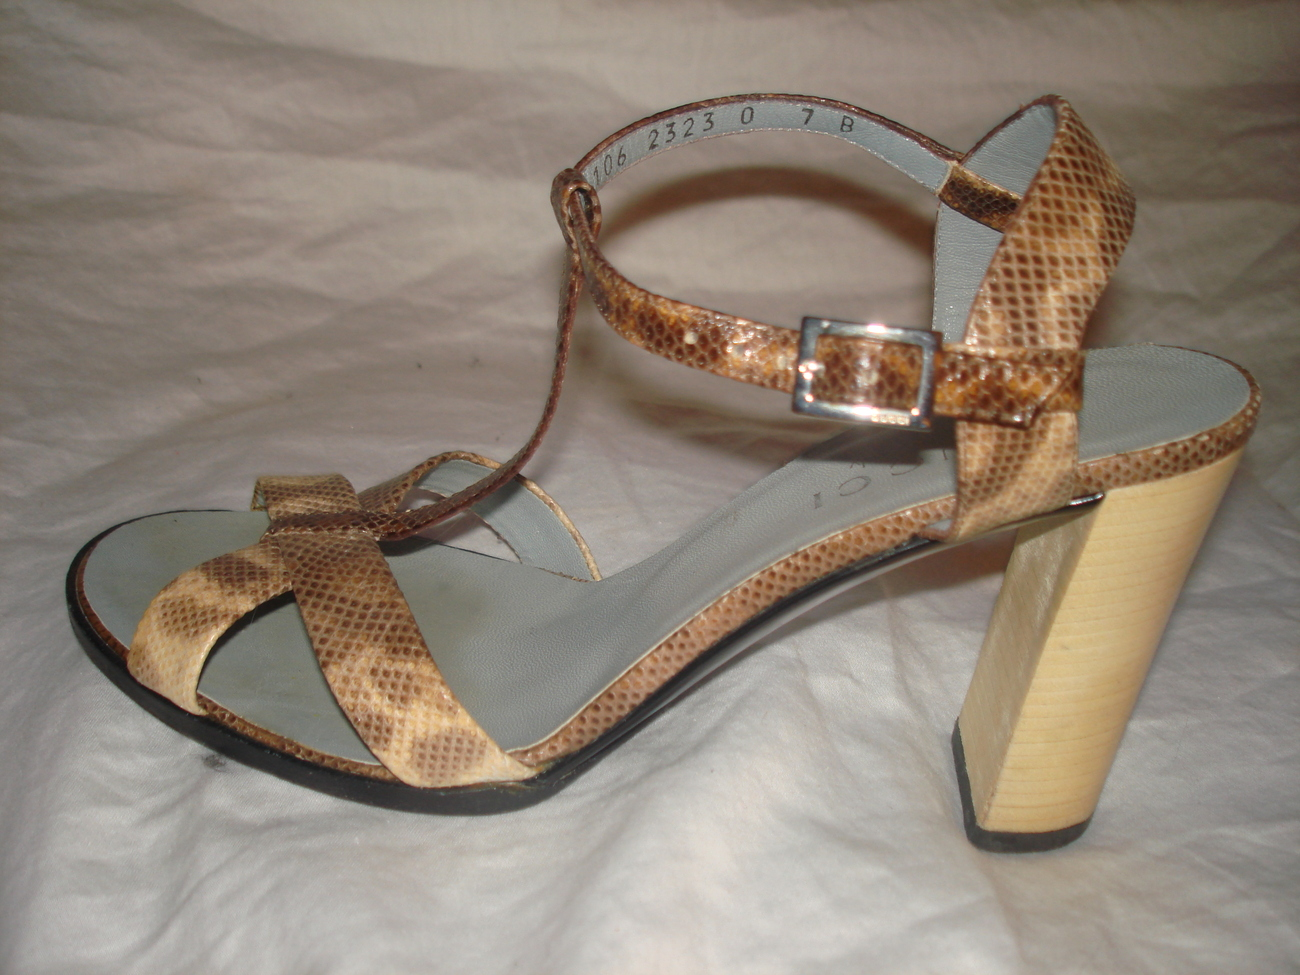 Gucci lizard skin women sandals Sz 7B